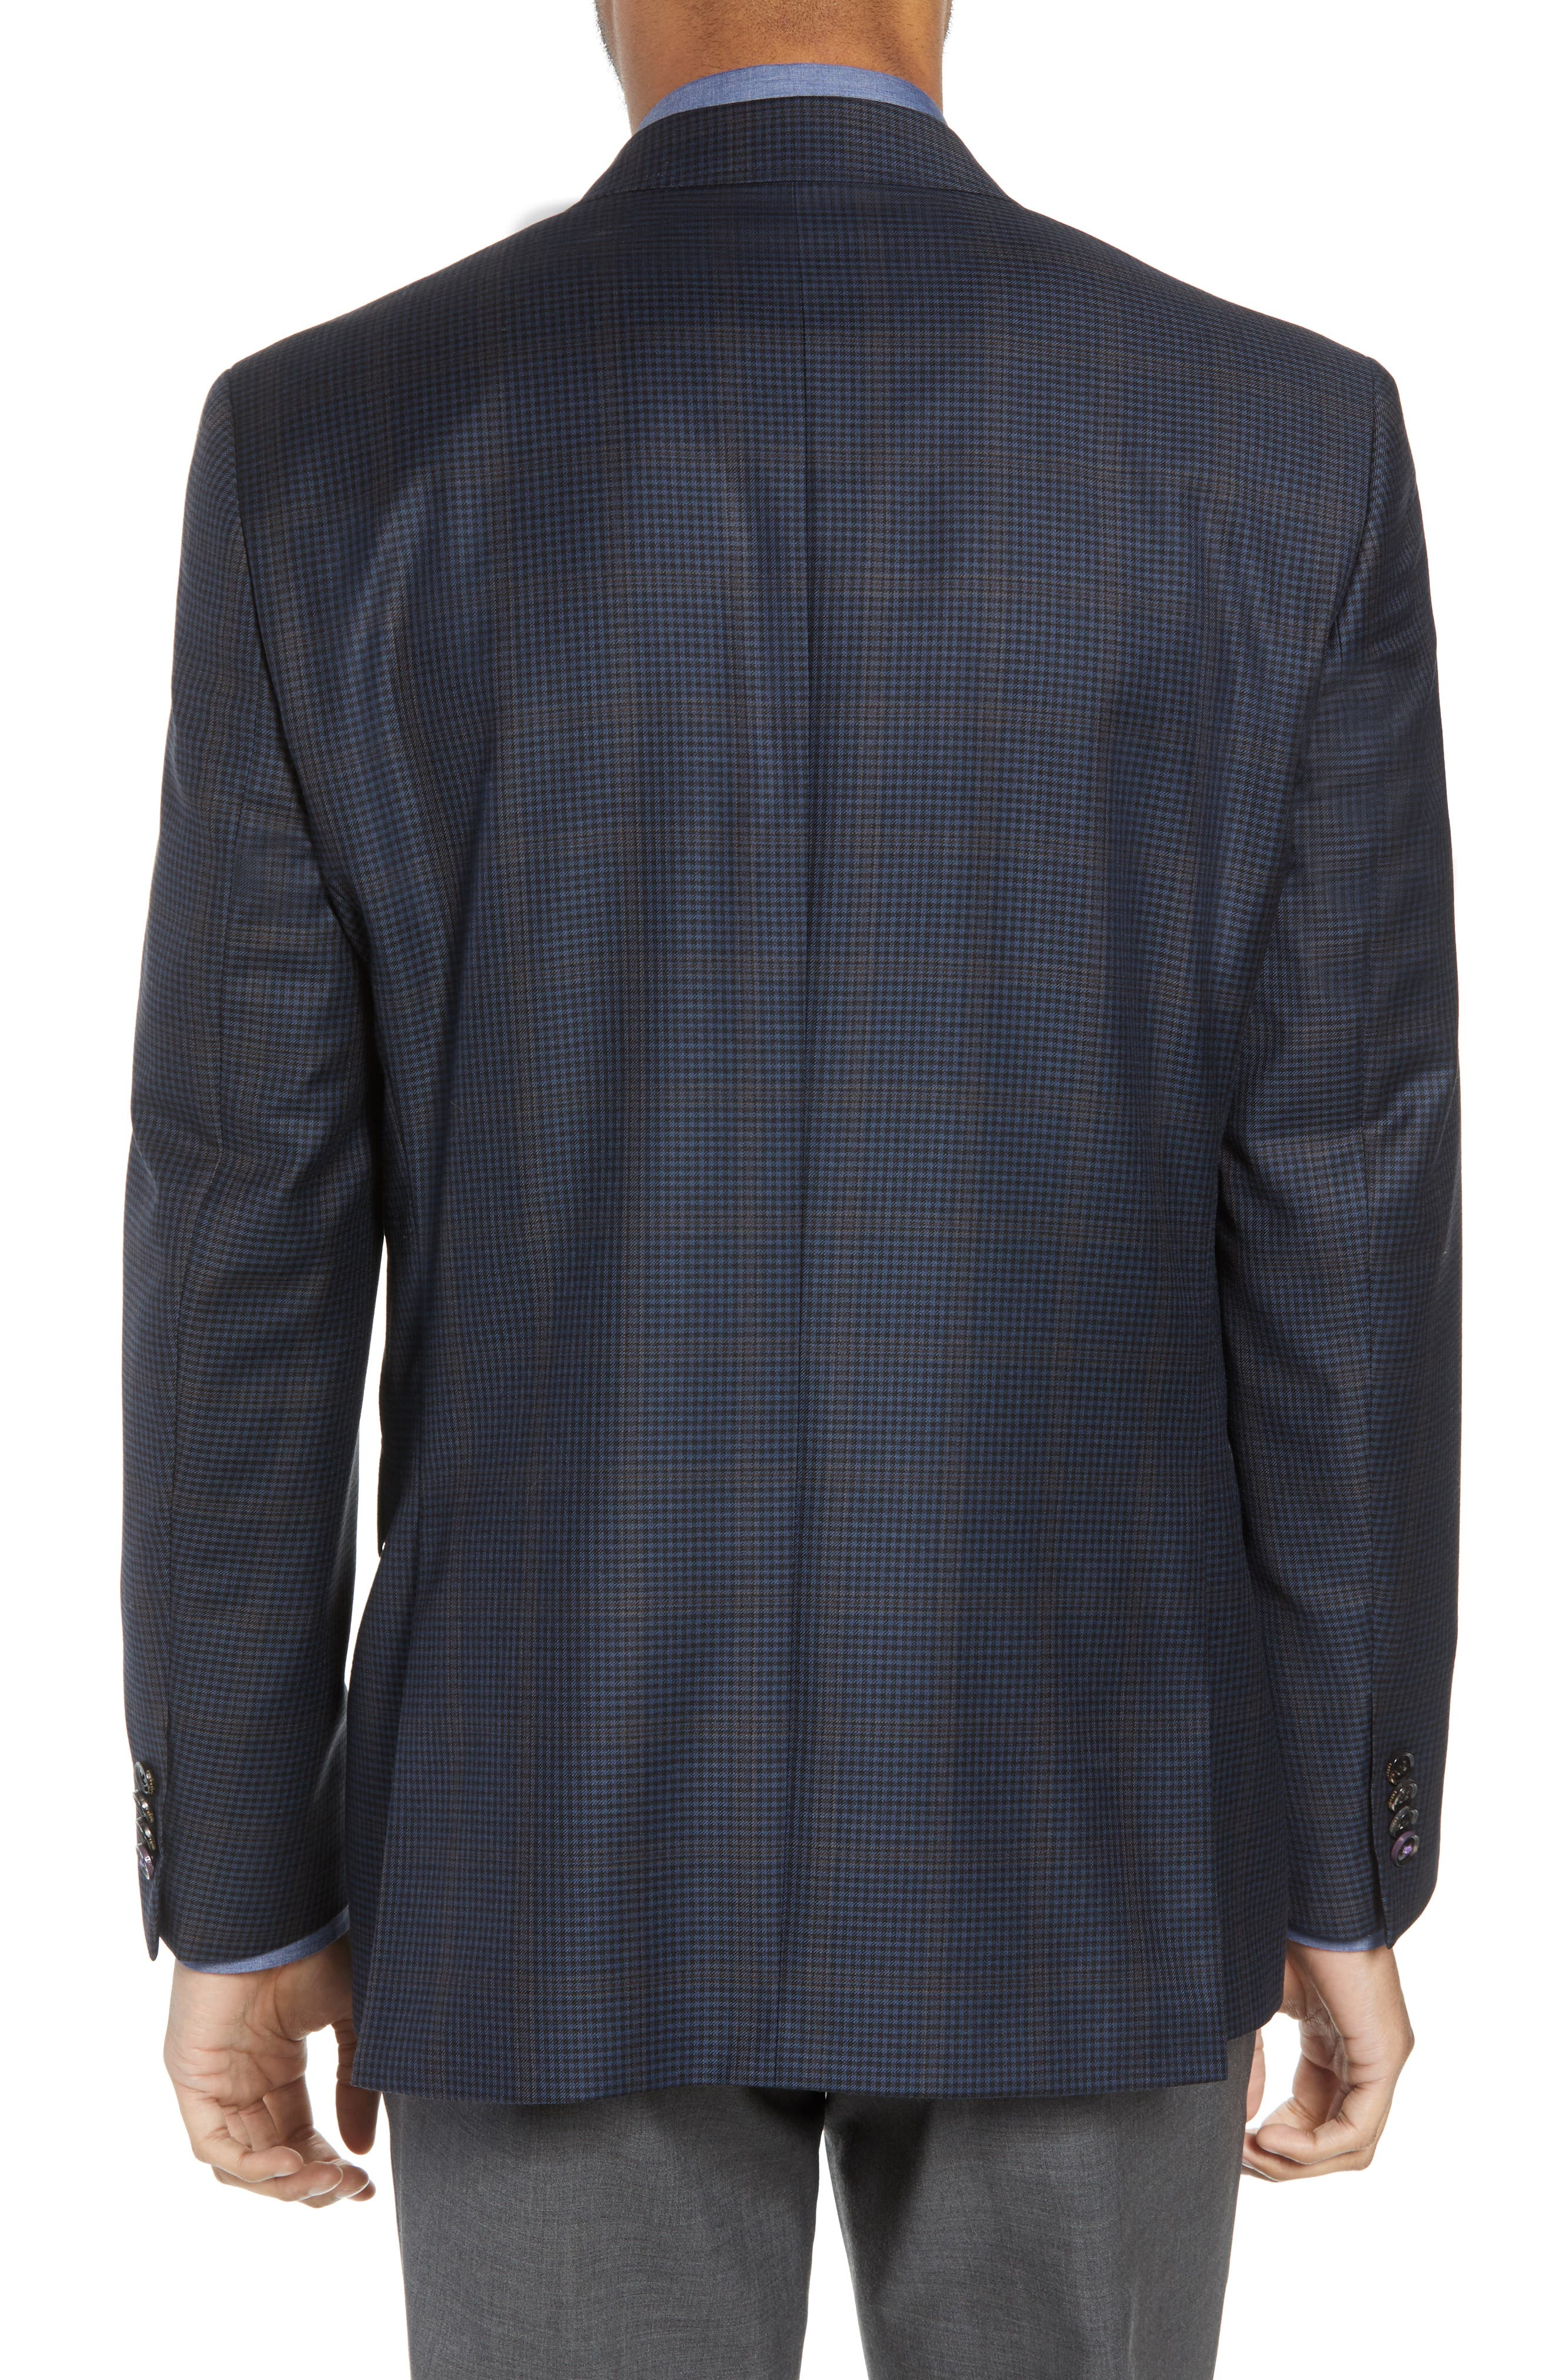 Jay Trim Fit Houndstooth Wool Sport Coat,                             Alternate thumbnail 2, color,                             Blue